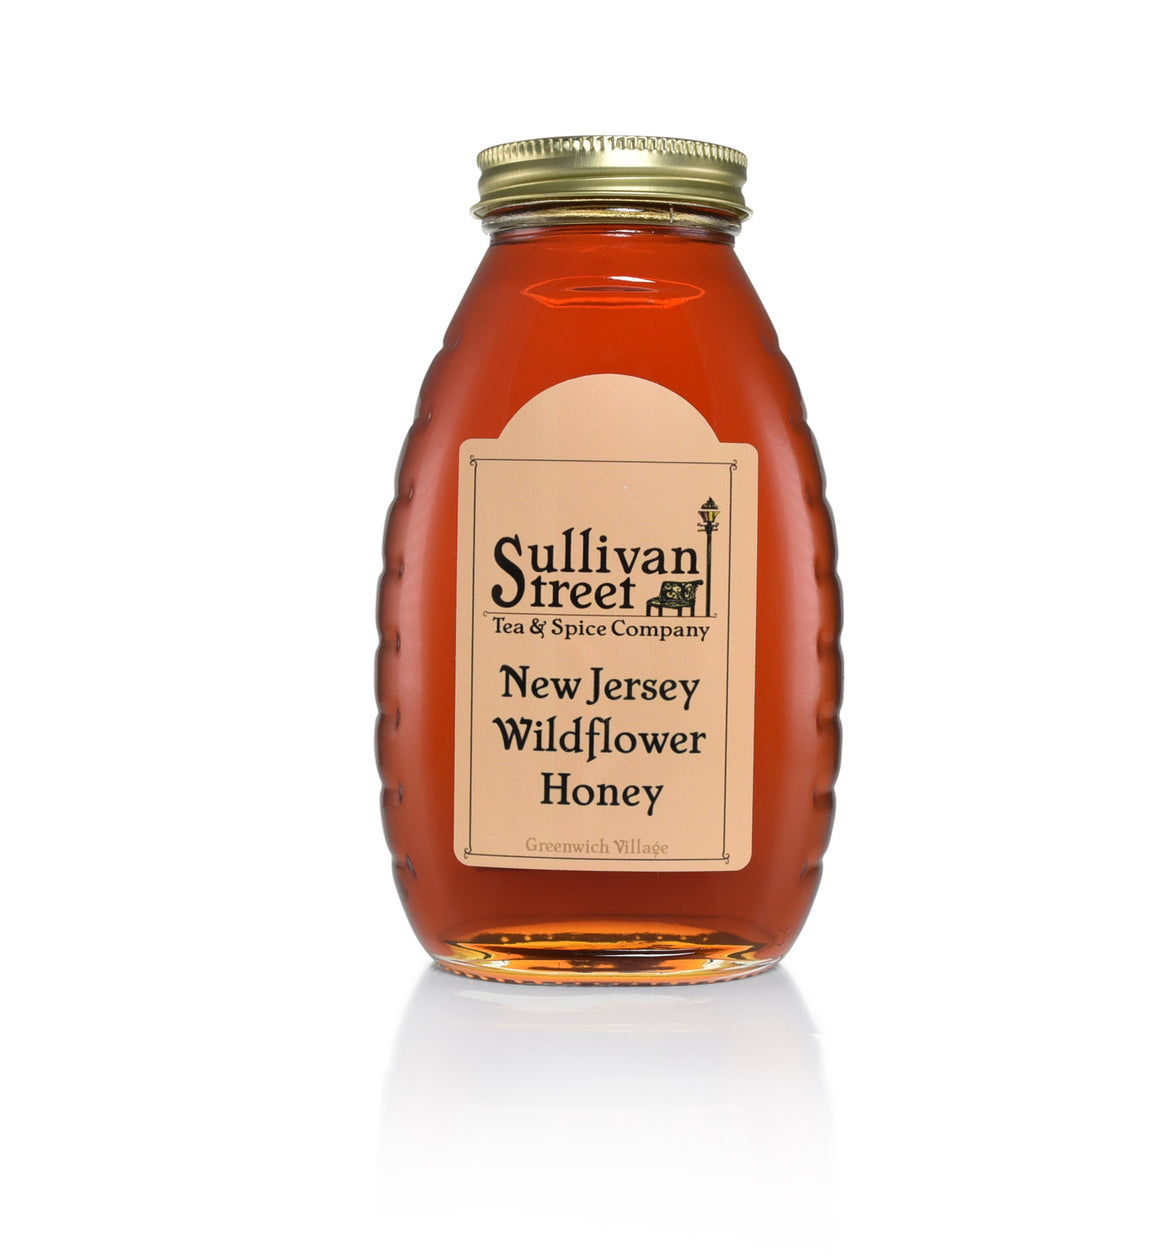 New Jersey Wildflower Honey 🐝 - Sullivan Street Tea & Spice Company